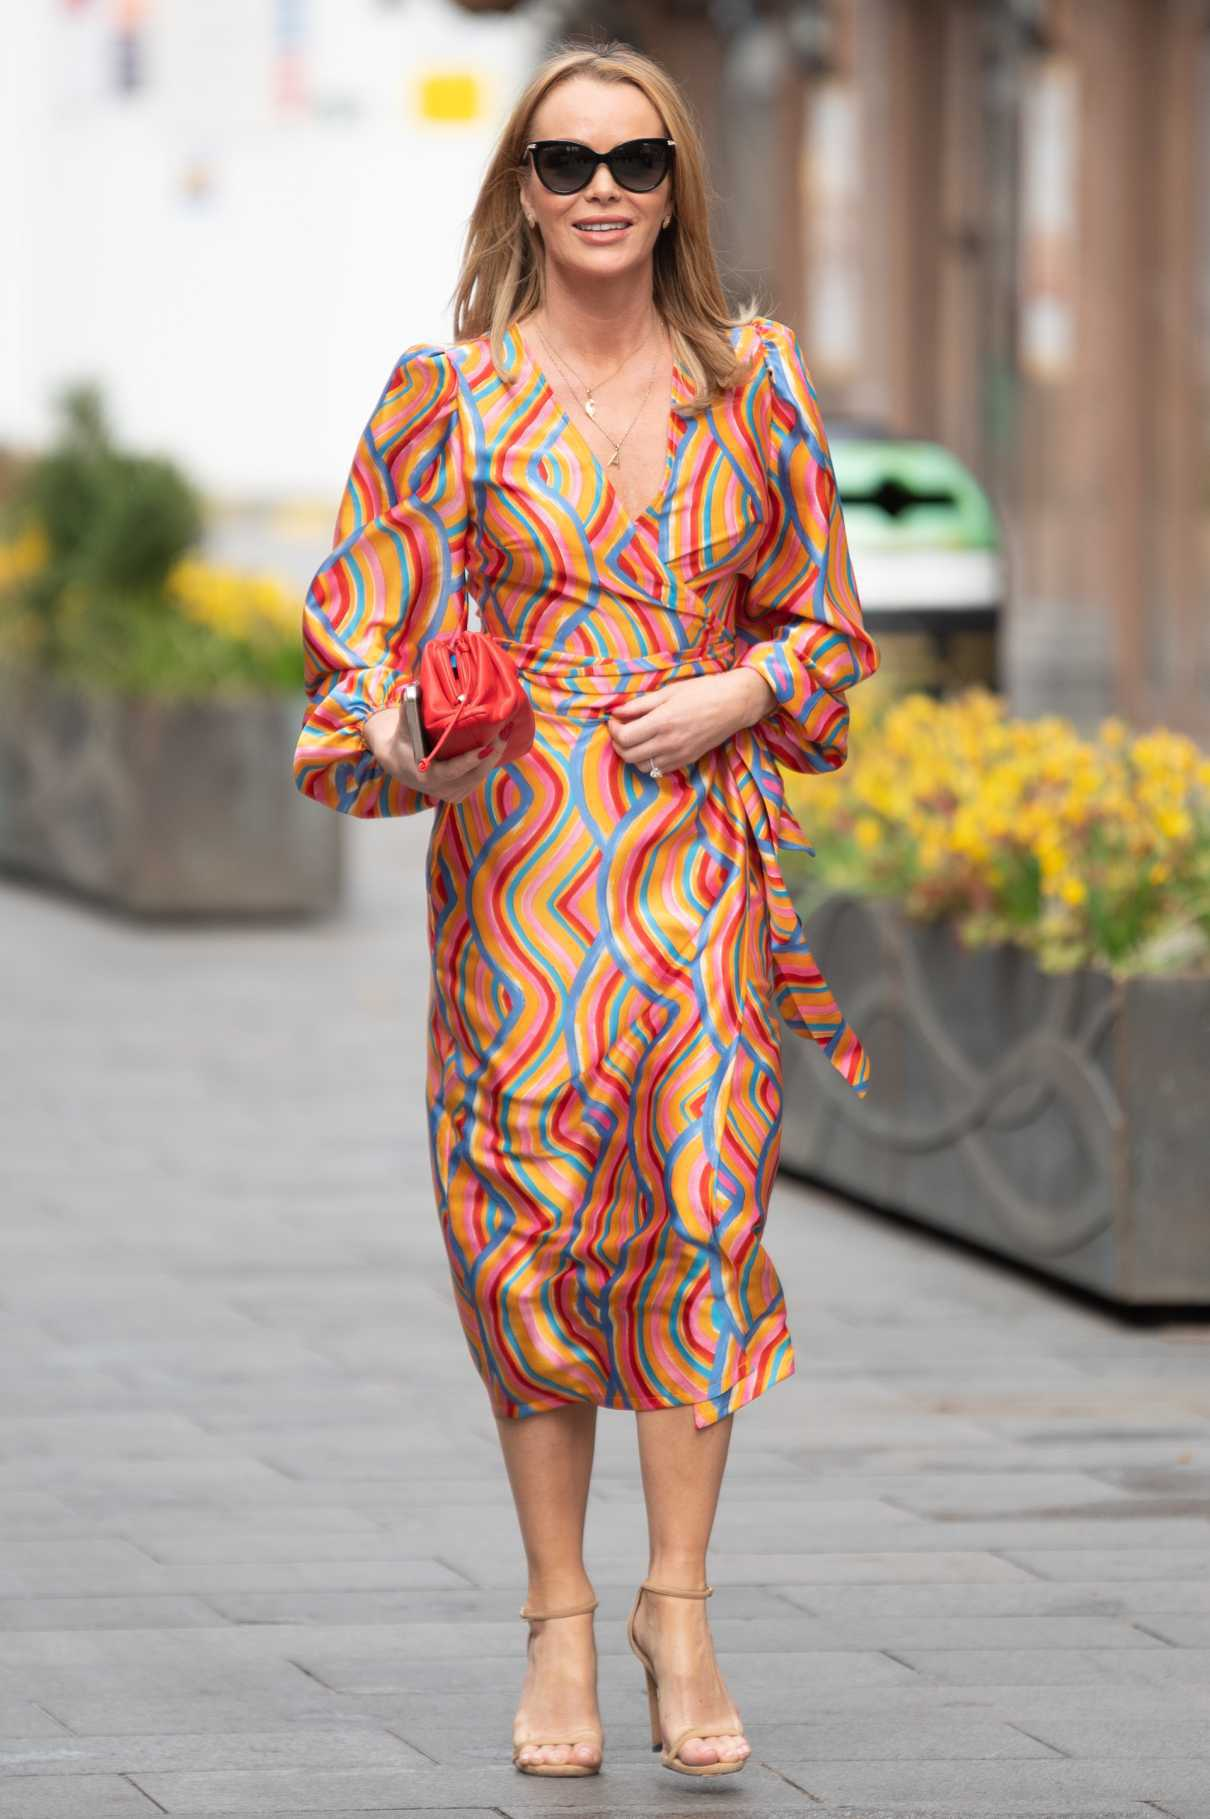 Amanda Holden in a Colorful Dress